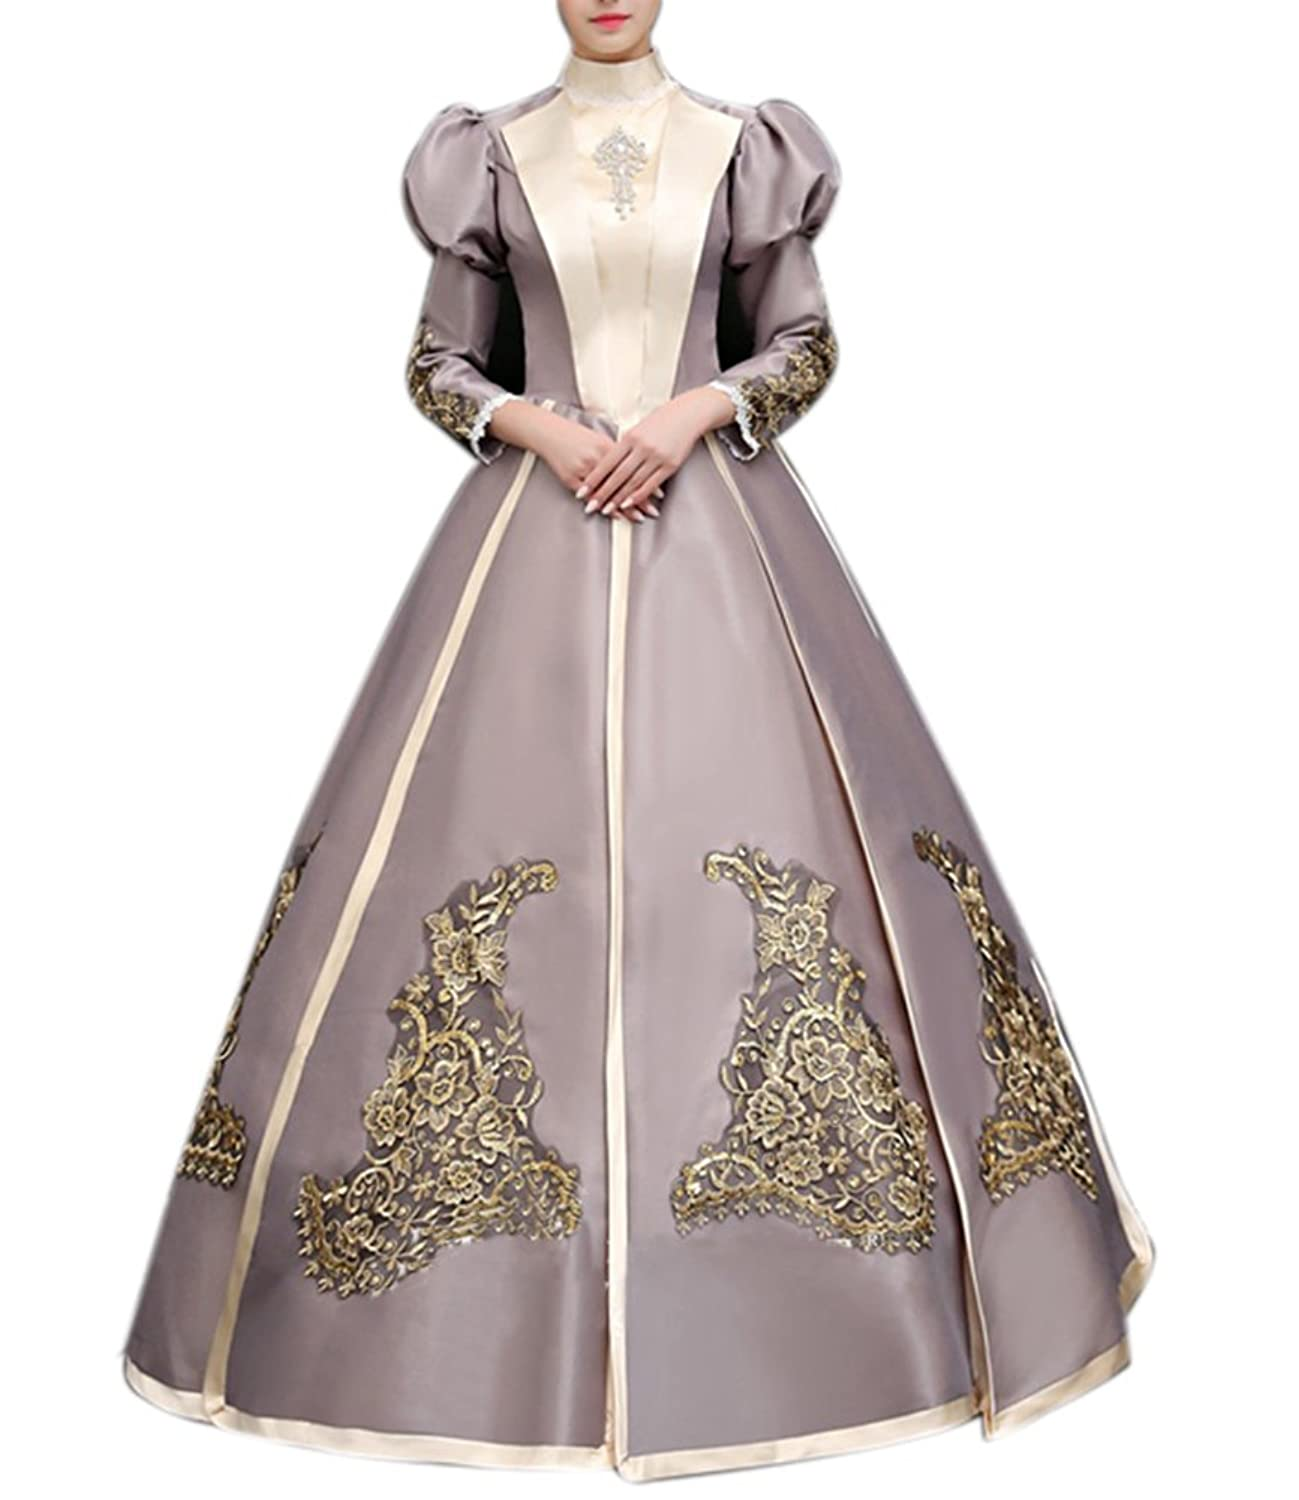 Ladies Renaissance Royal Court Dress Gowns | Deluxe Theatrical ...